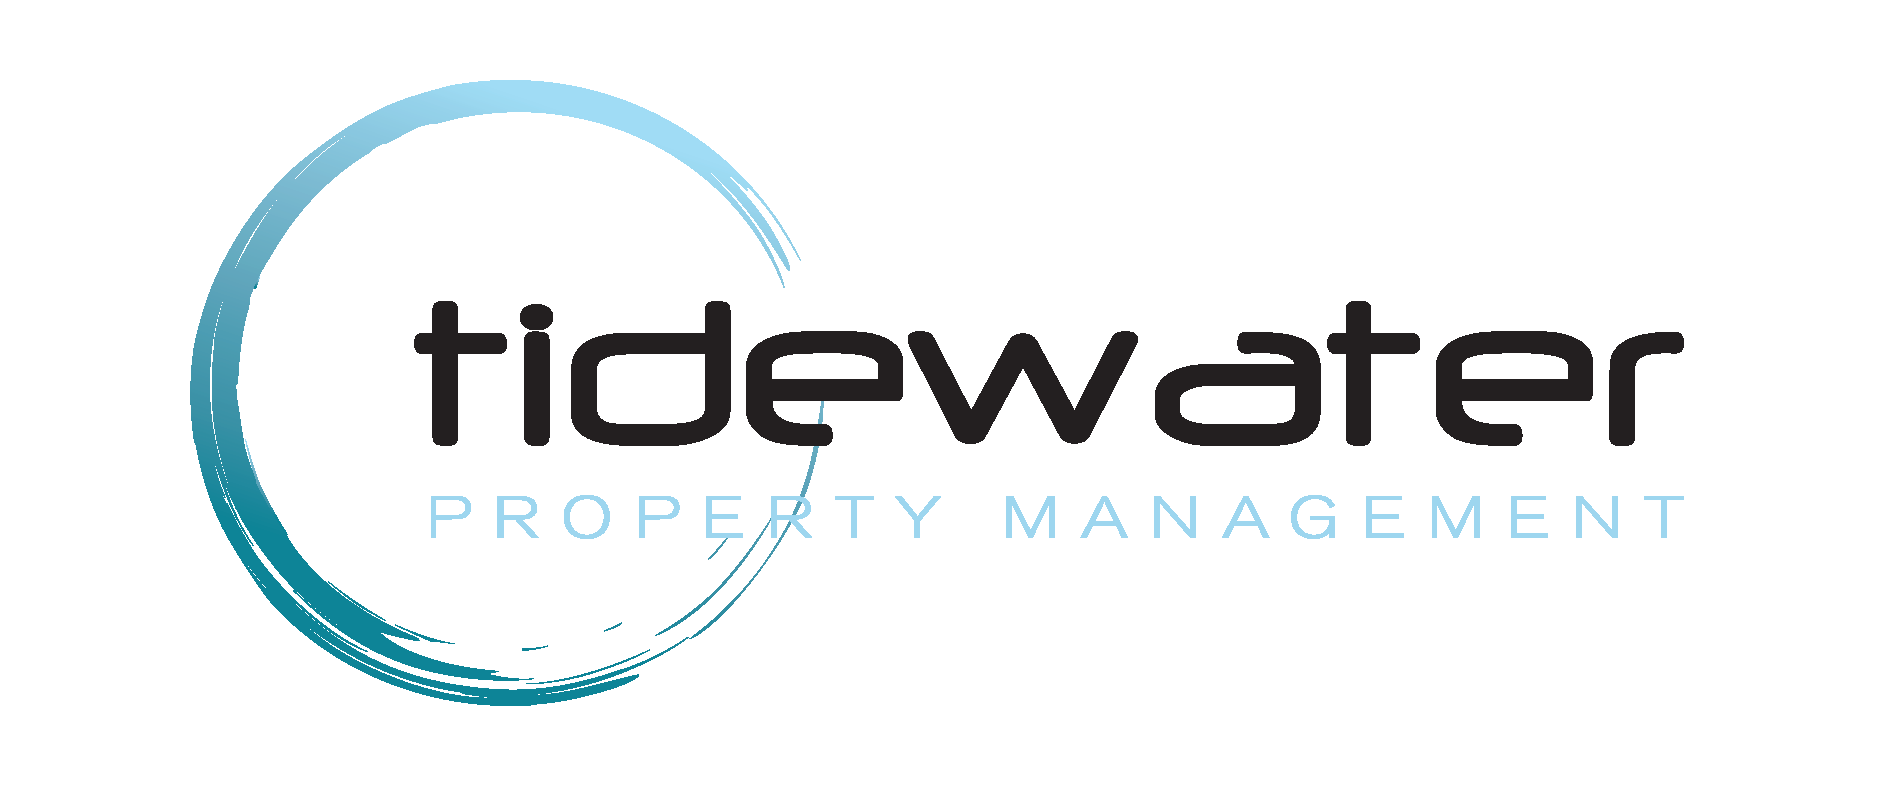 Tidewater Property Management